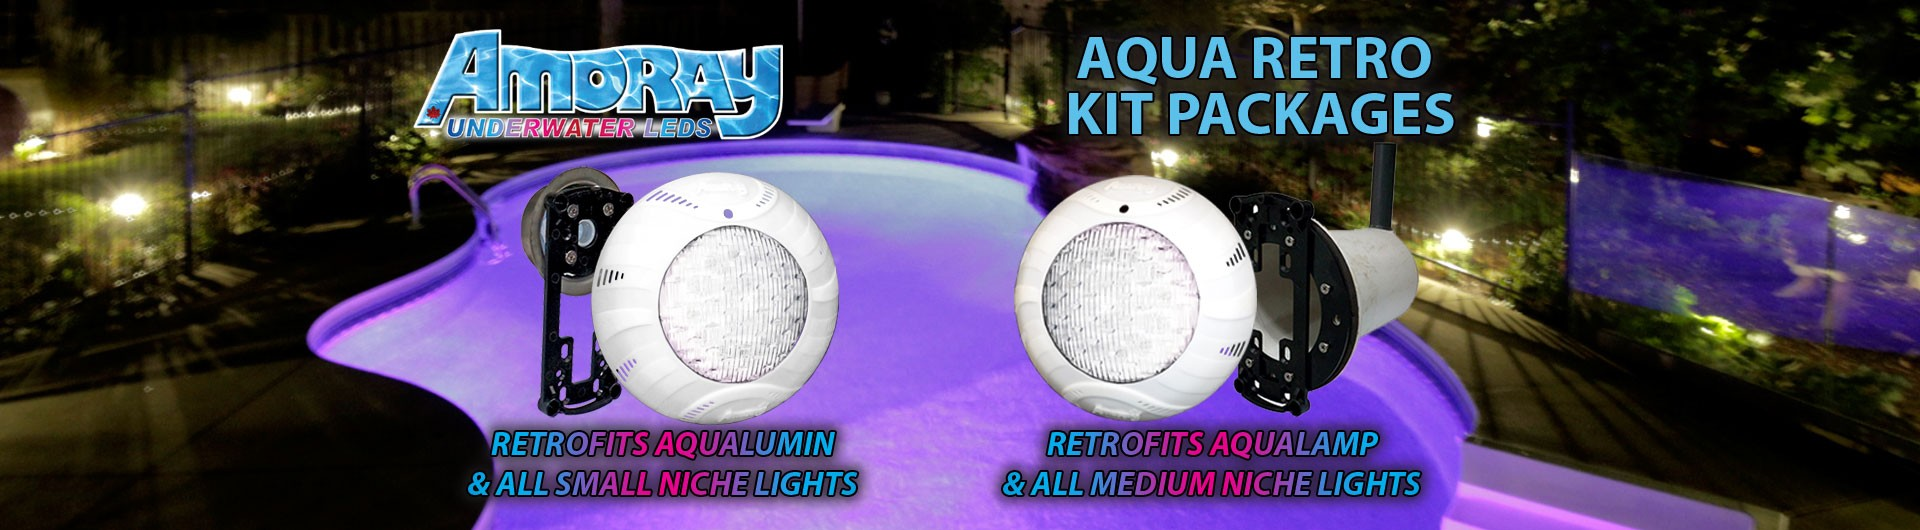 Amoray Aqua Retro Kit Packages